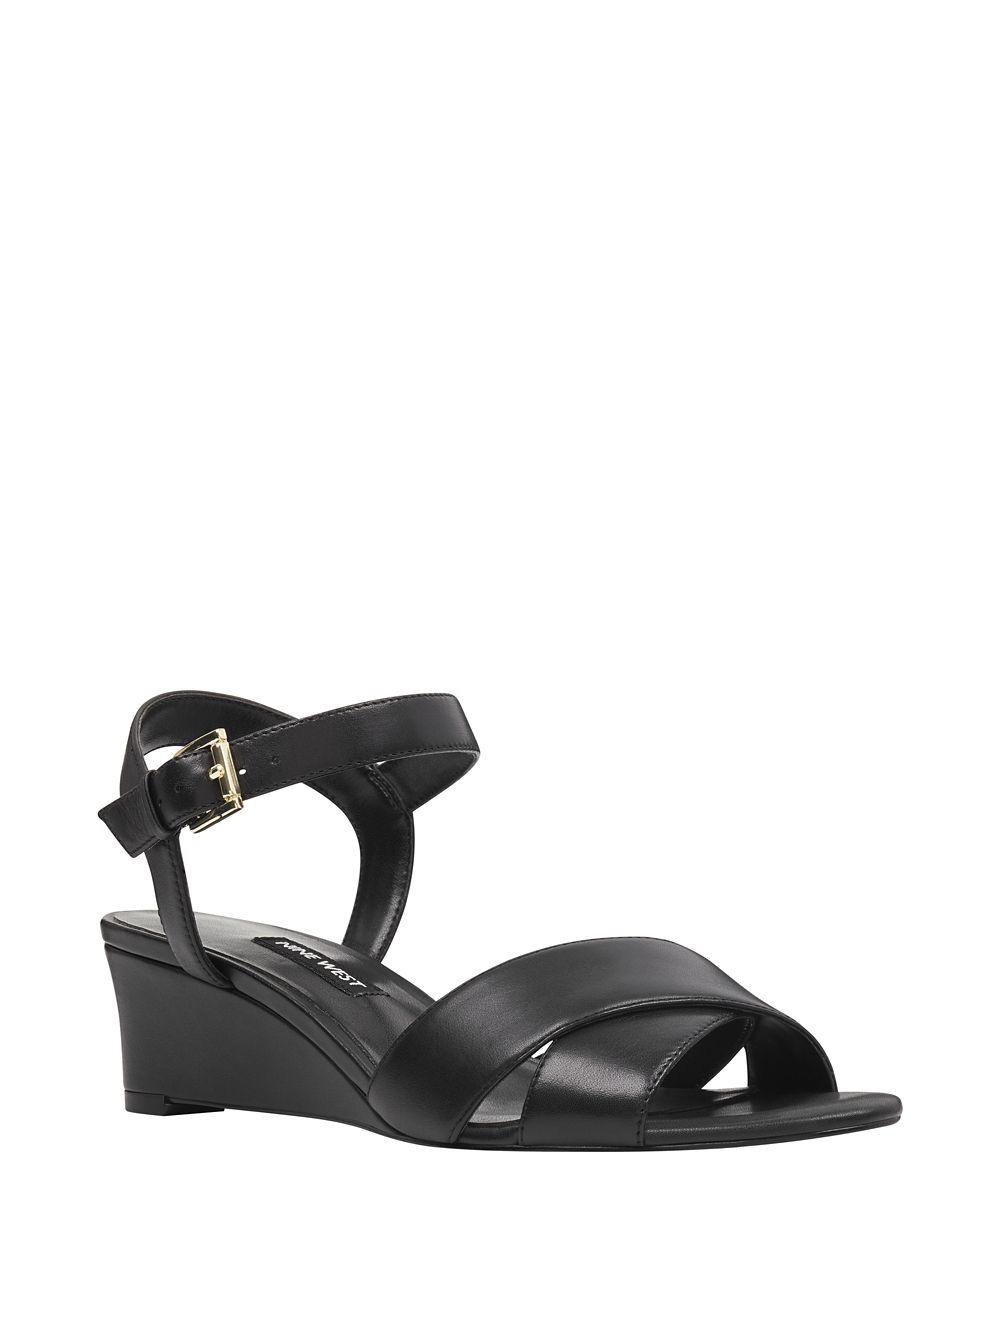 3a7dd6ab58d Lyst - Nine West Laglade Leather Wedge Sandals in Black